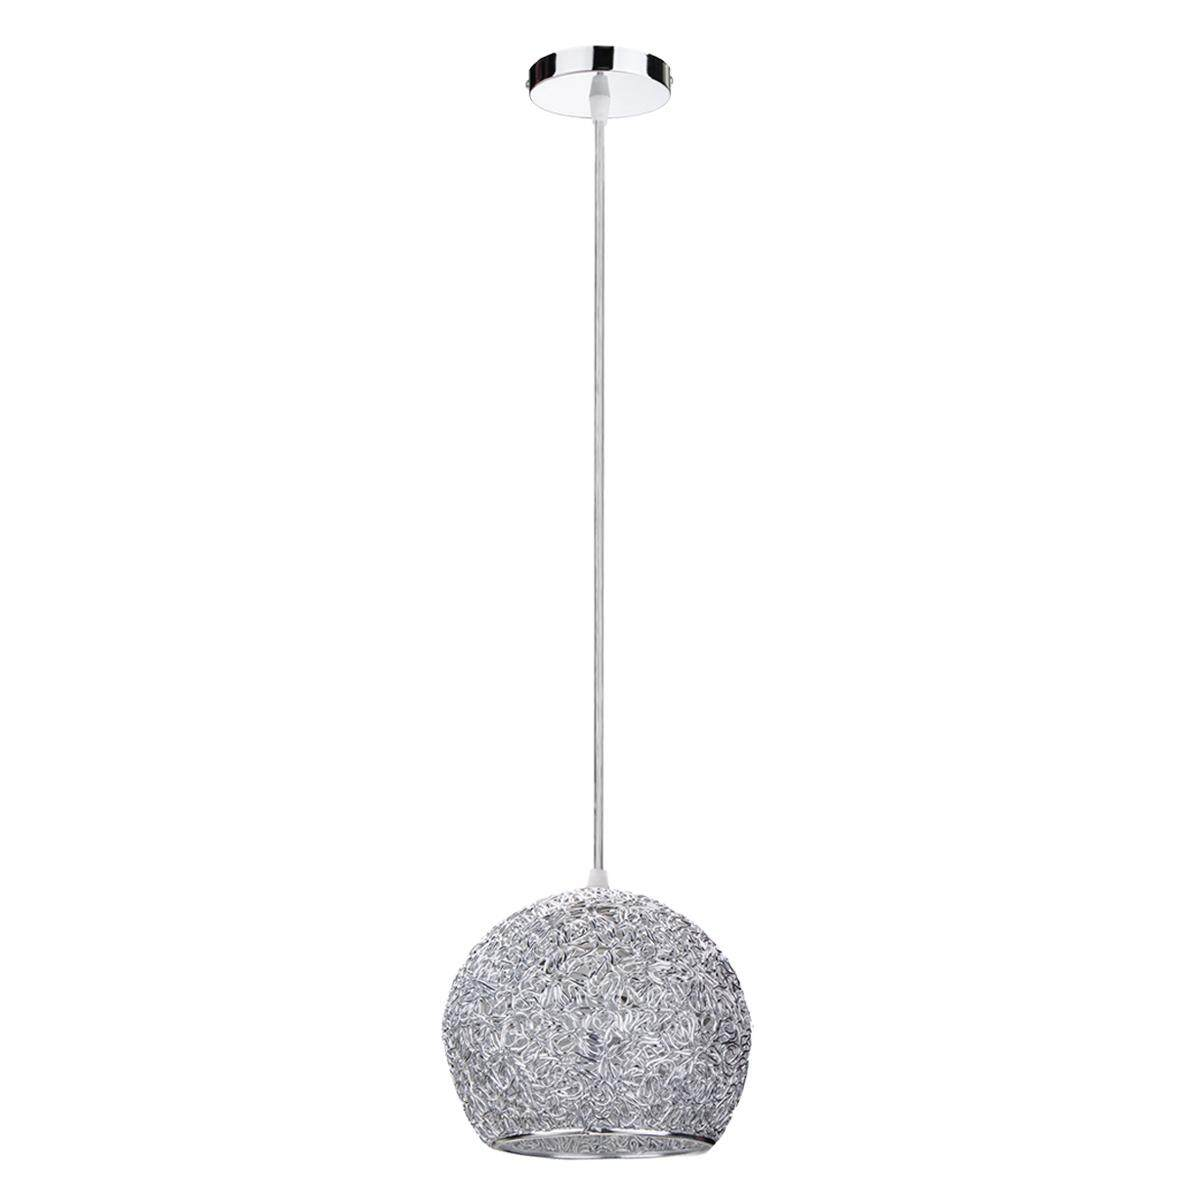 Floor Lamps For Sale Standing Lamp Prices Brands Review Wiring A Light Bar Switch Modern Retro Chandelier Pendant Ceiling Wire Silver Home Decor Intl